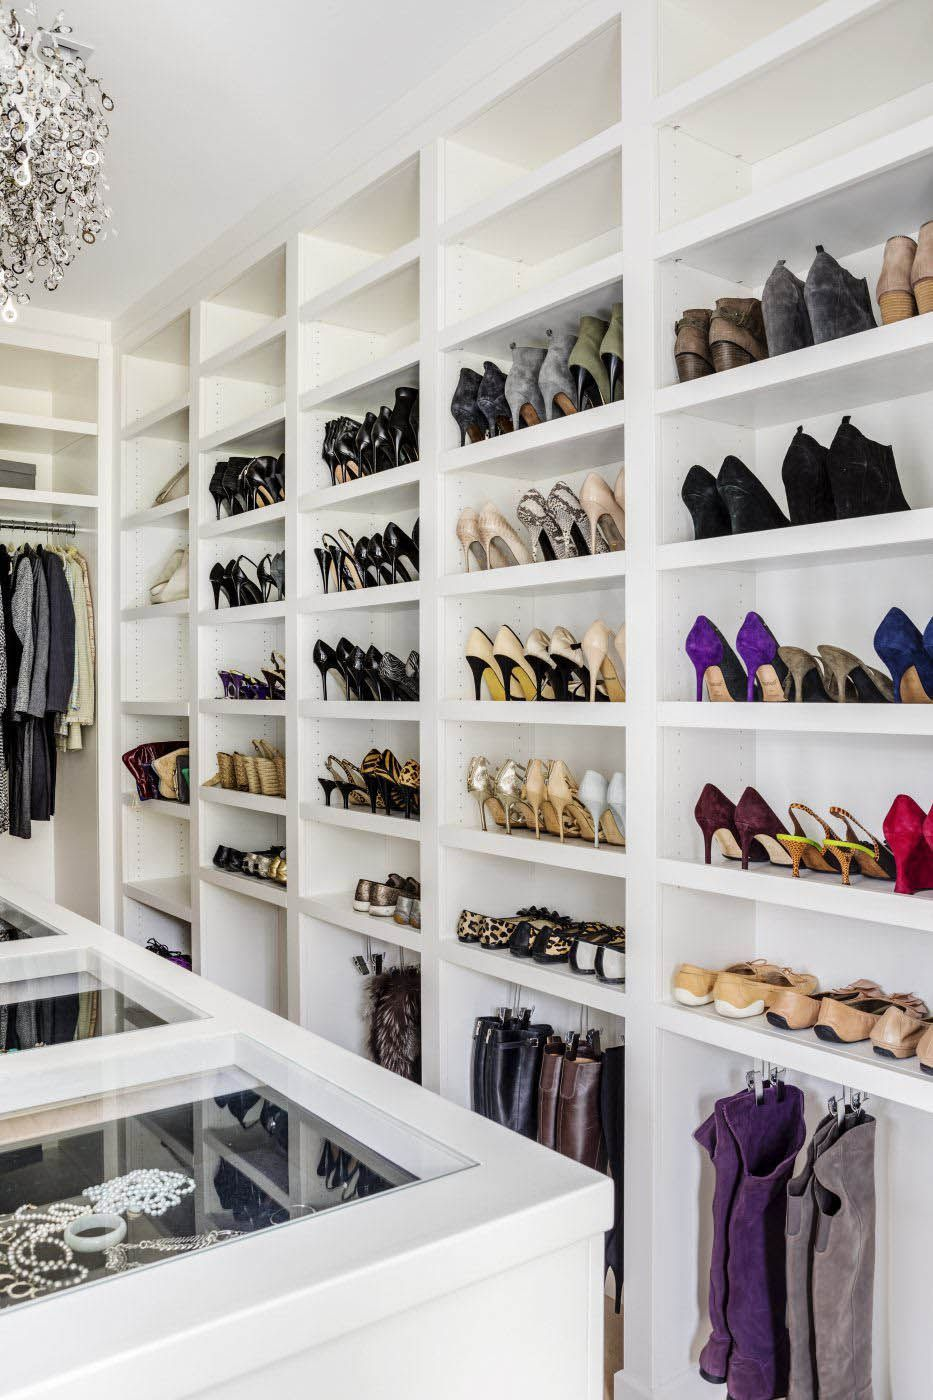 Incredible Shoe Rack Ideas Interior Design Luxury Modern Closet Design Closet Designs